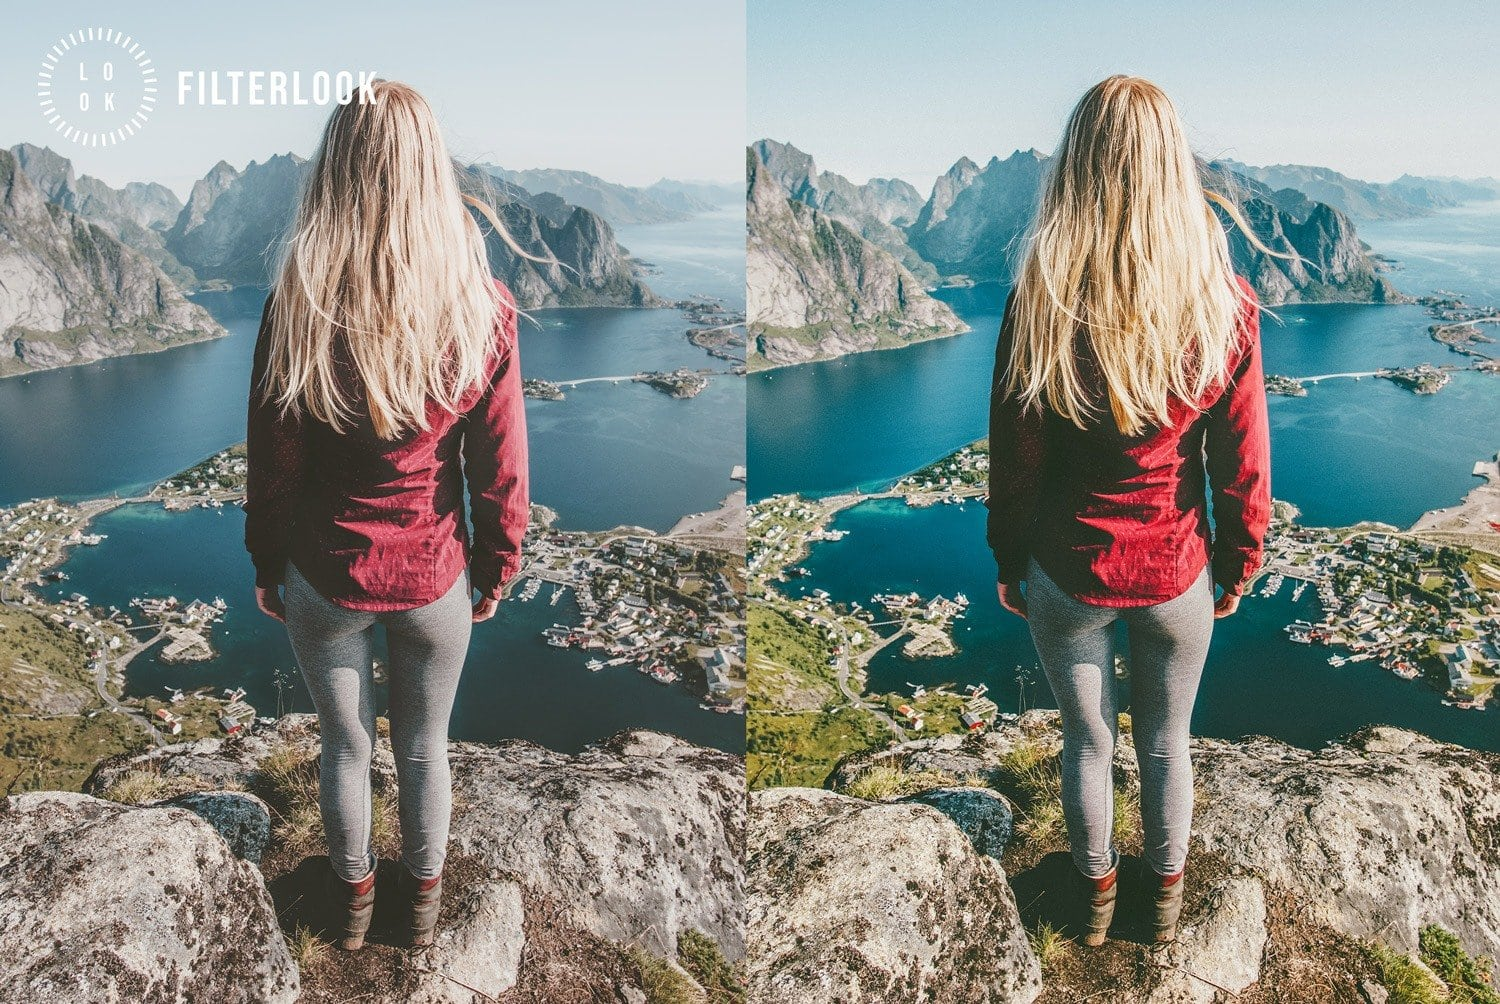 Free-Lightroom-Preset-Traveler-Before-and-After-Filterlook.com